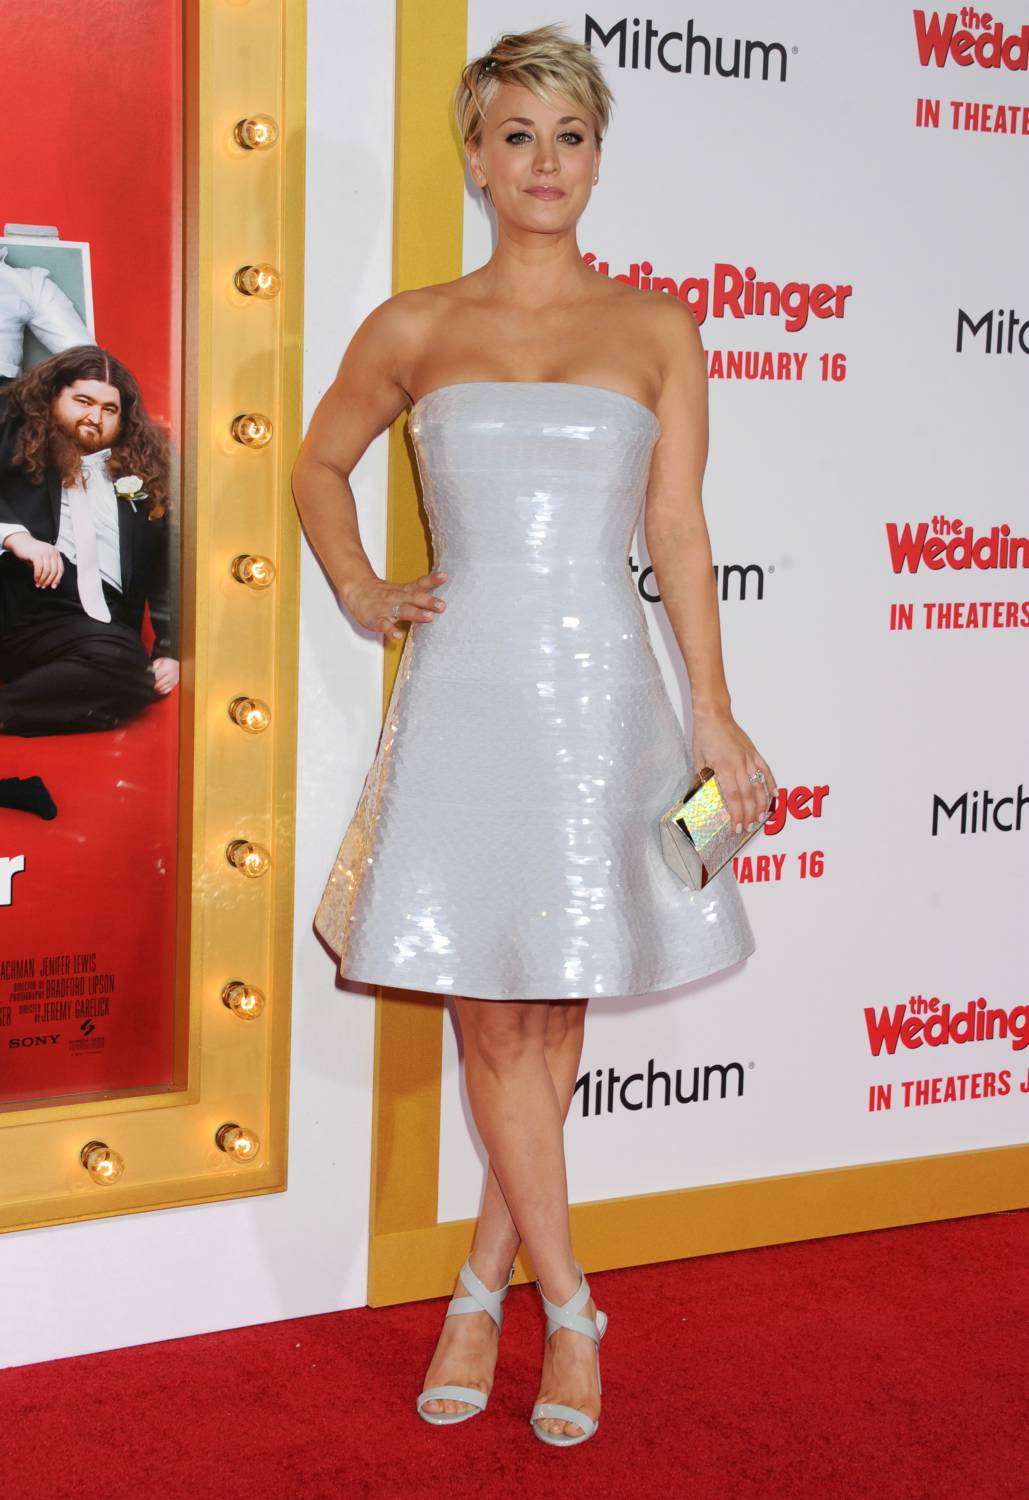 kaley-cuoco-in-kaufmanfranco-wedding-ringer-la-premiere/kevin-hart-josh-gad-and-kaley-cuoco-sweeting-at-the-photo-call-for-screen-gems-the-wedding-ringer